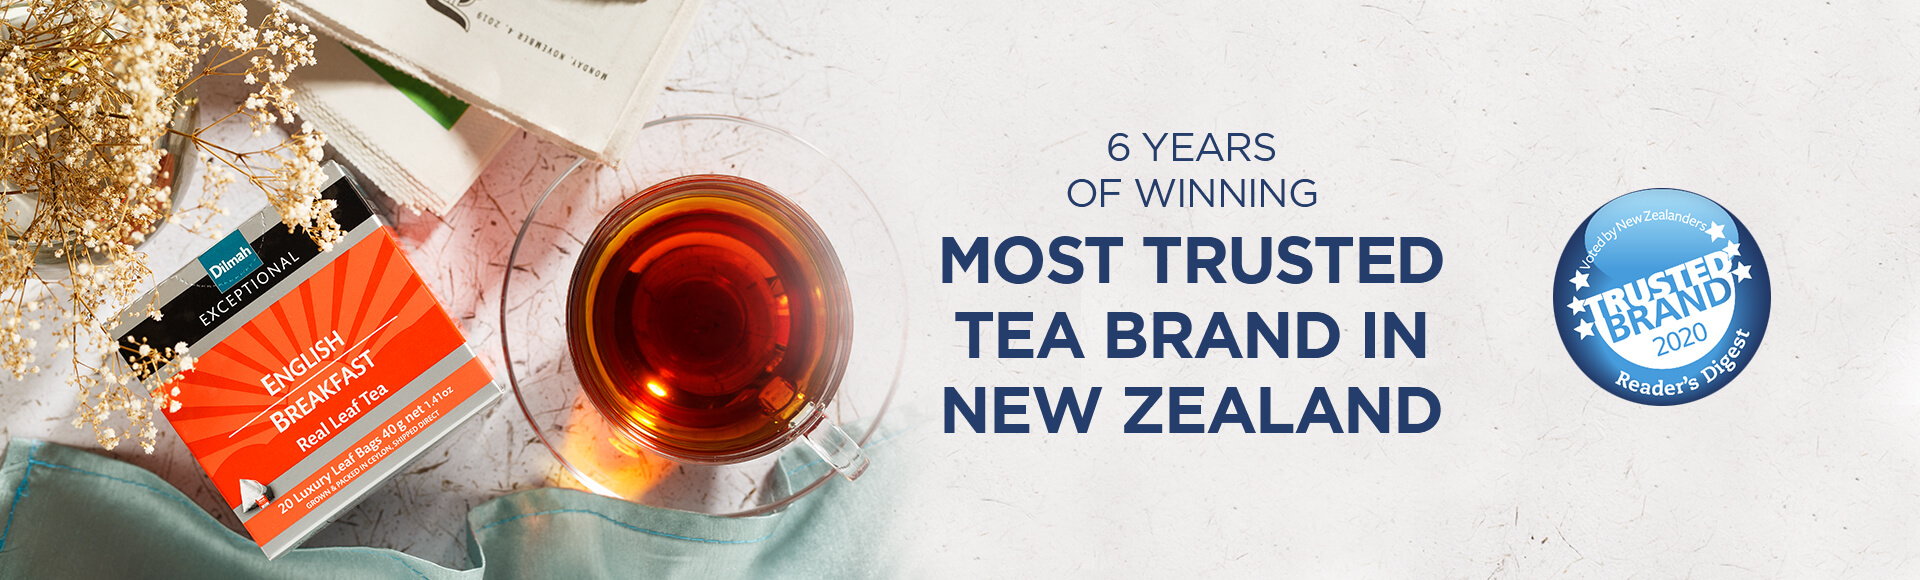 Most Trusted Tea Brand